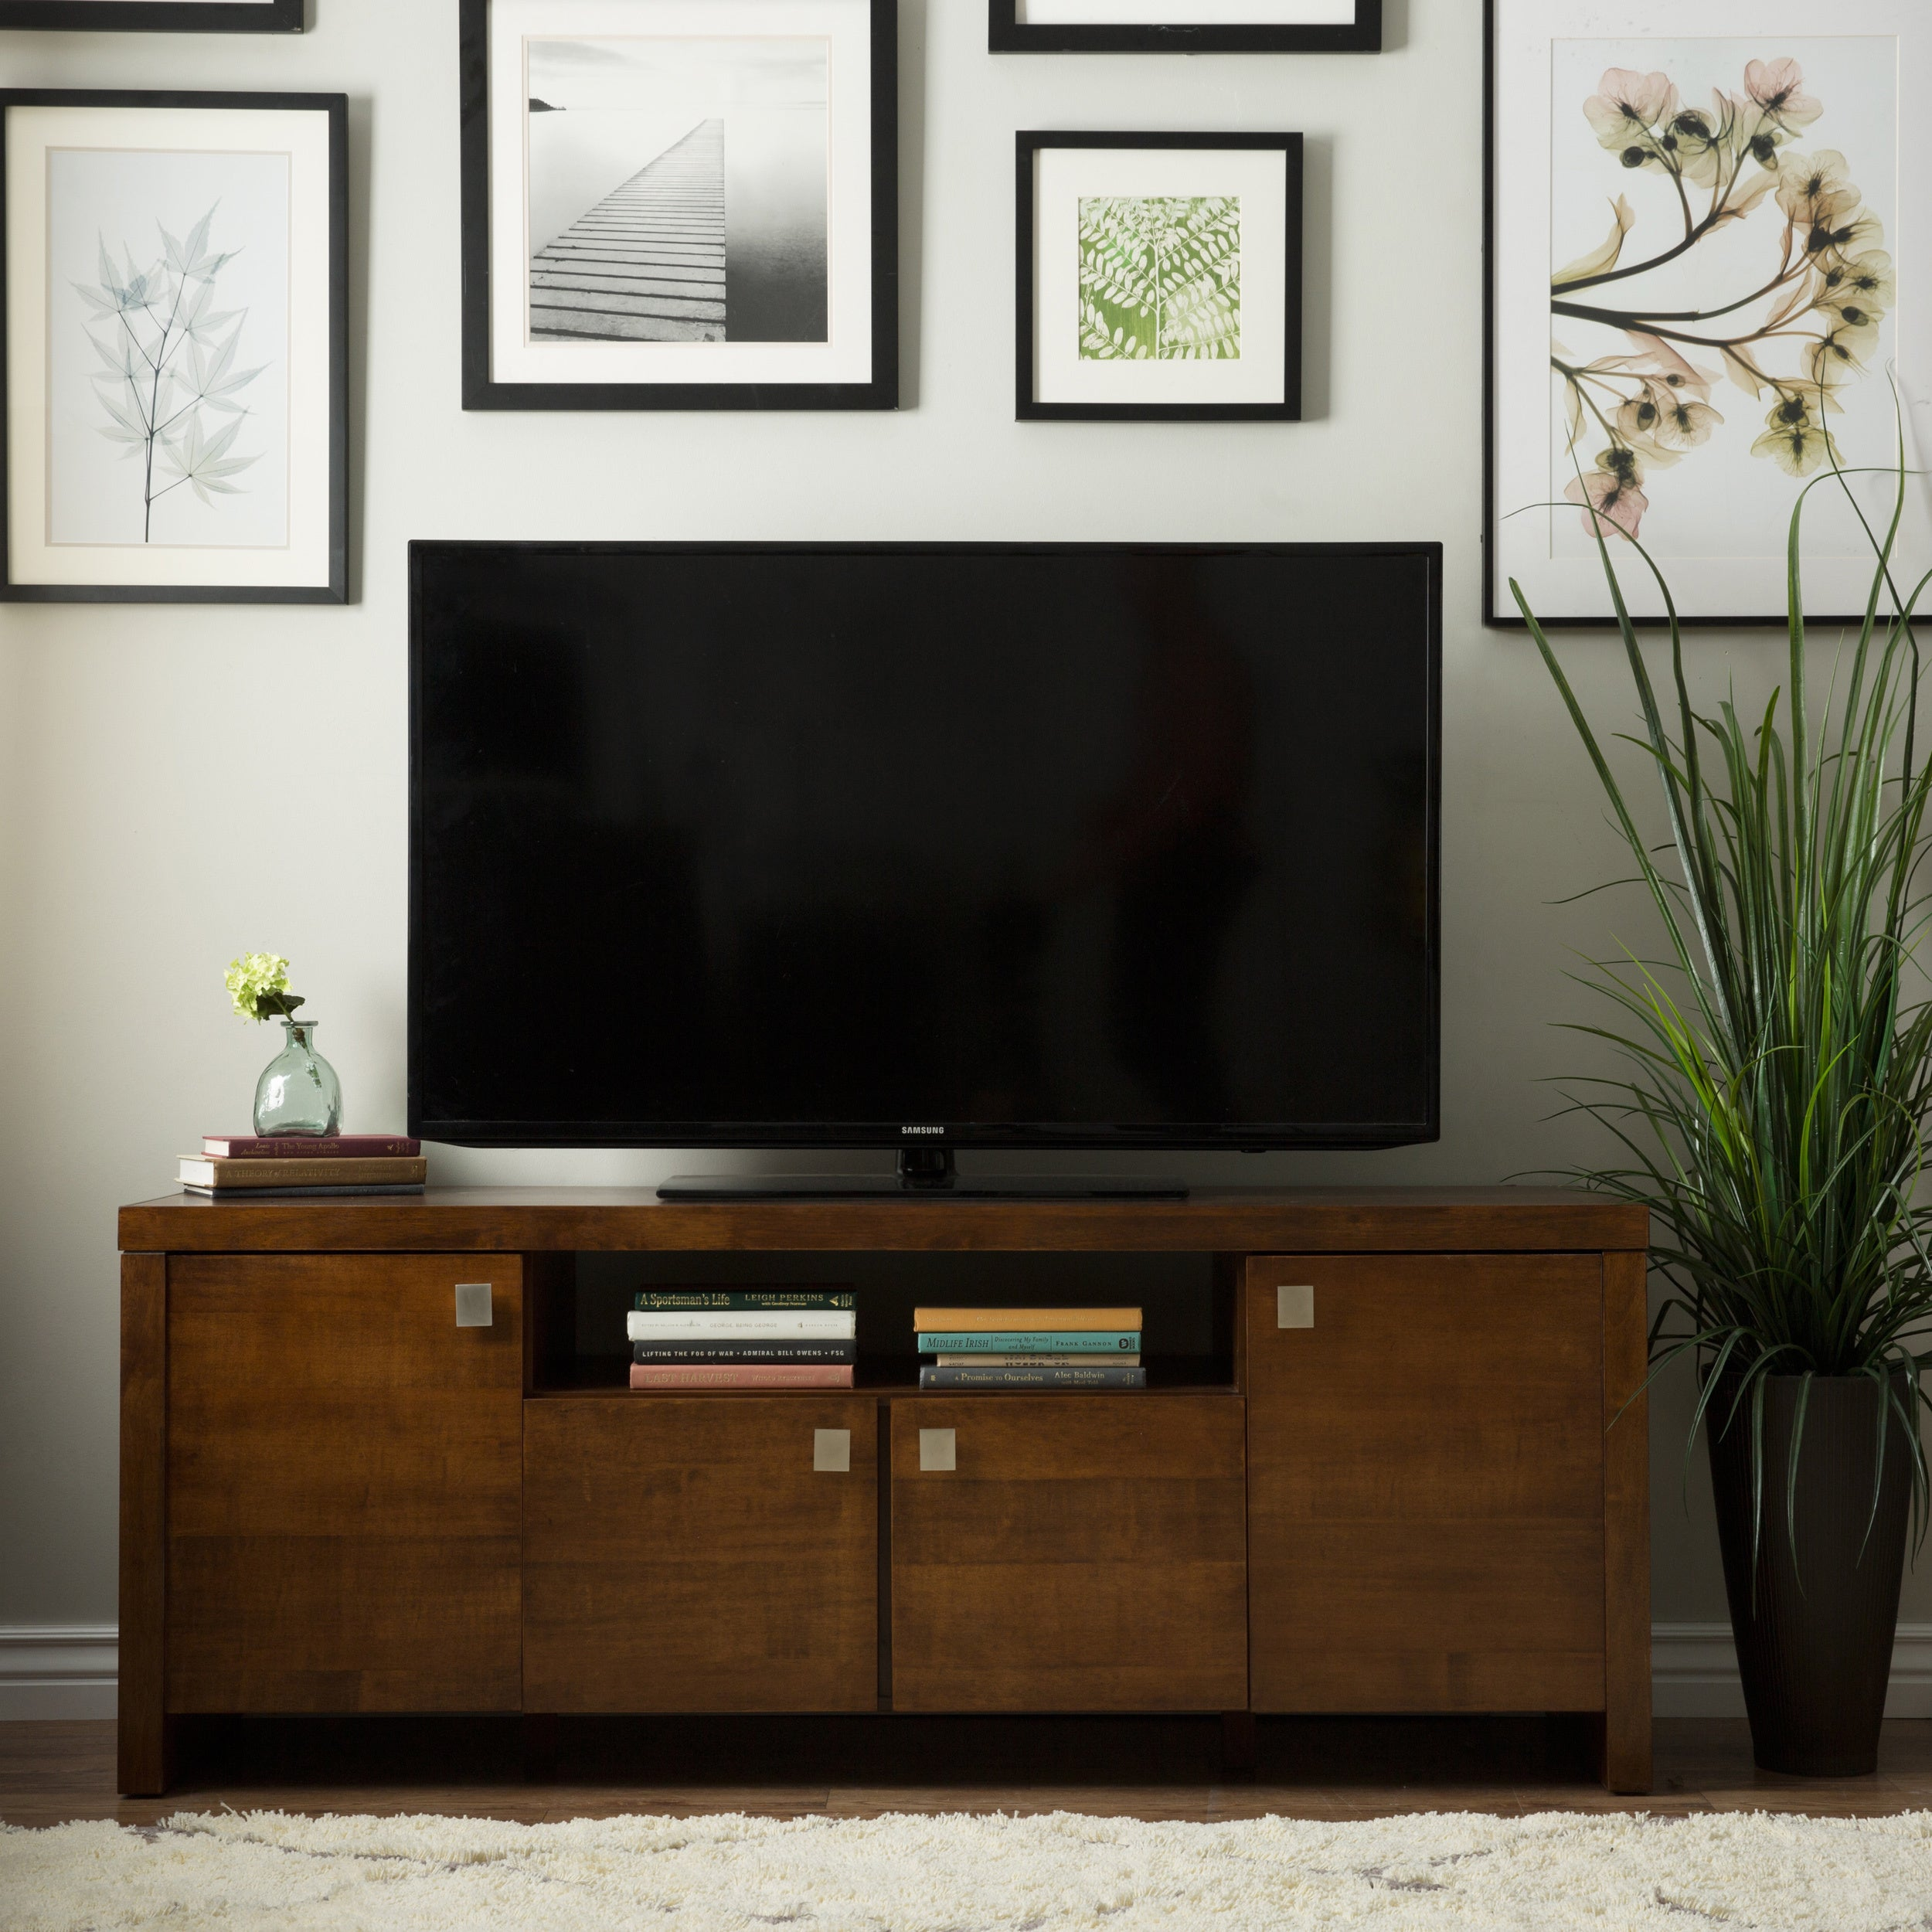 Uncategorized Right Size Tv For Room right size tv for your living room centerfieldbar com find the televisions guides com